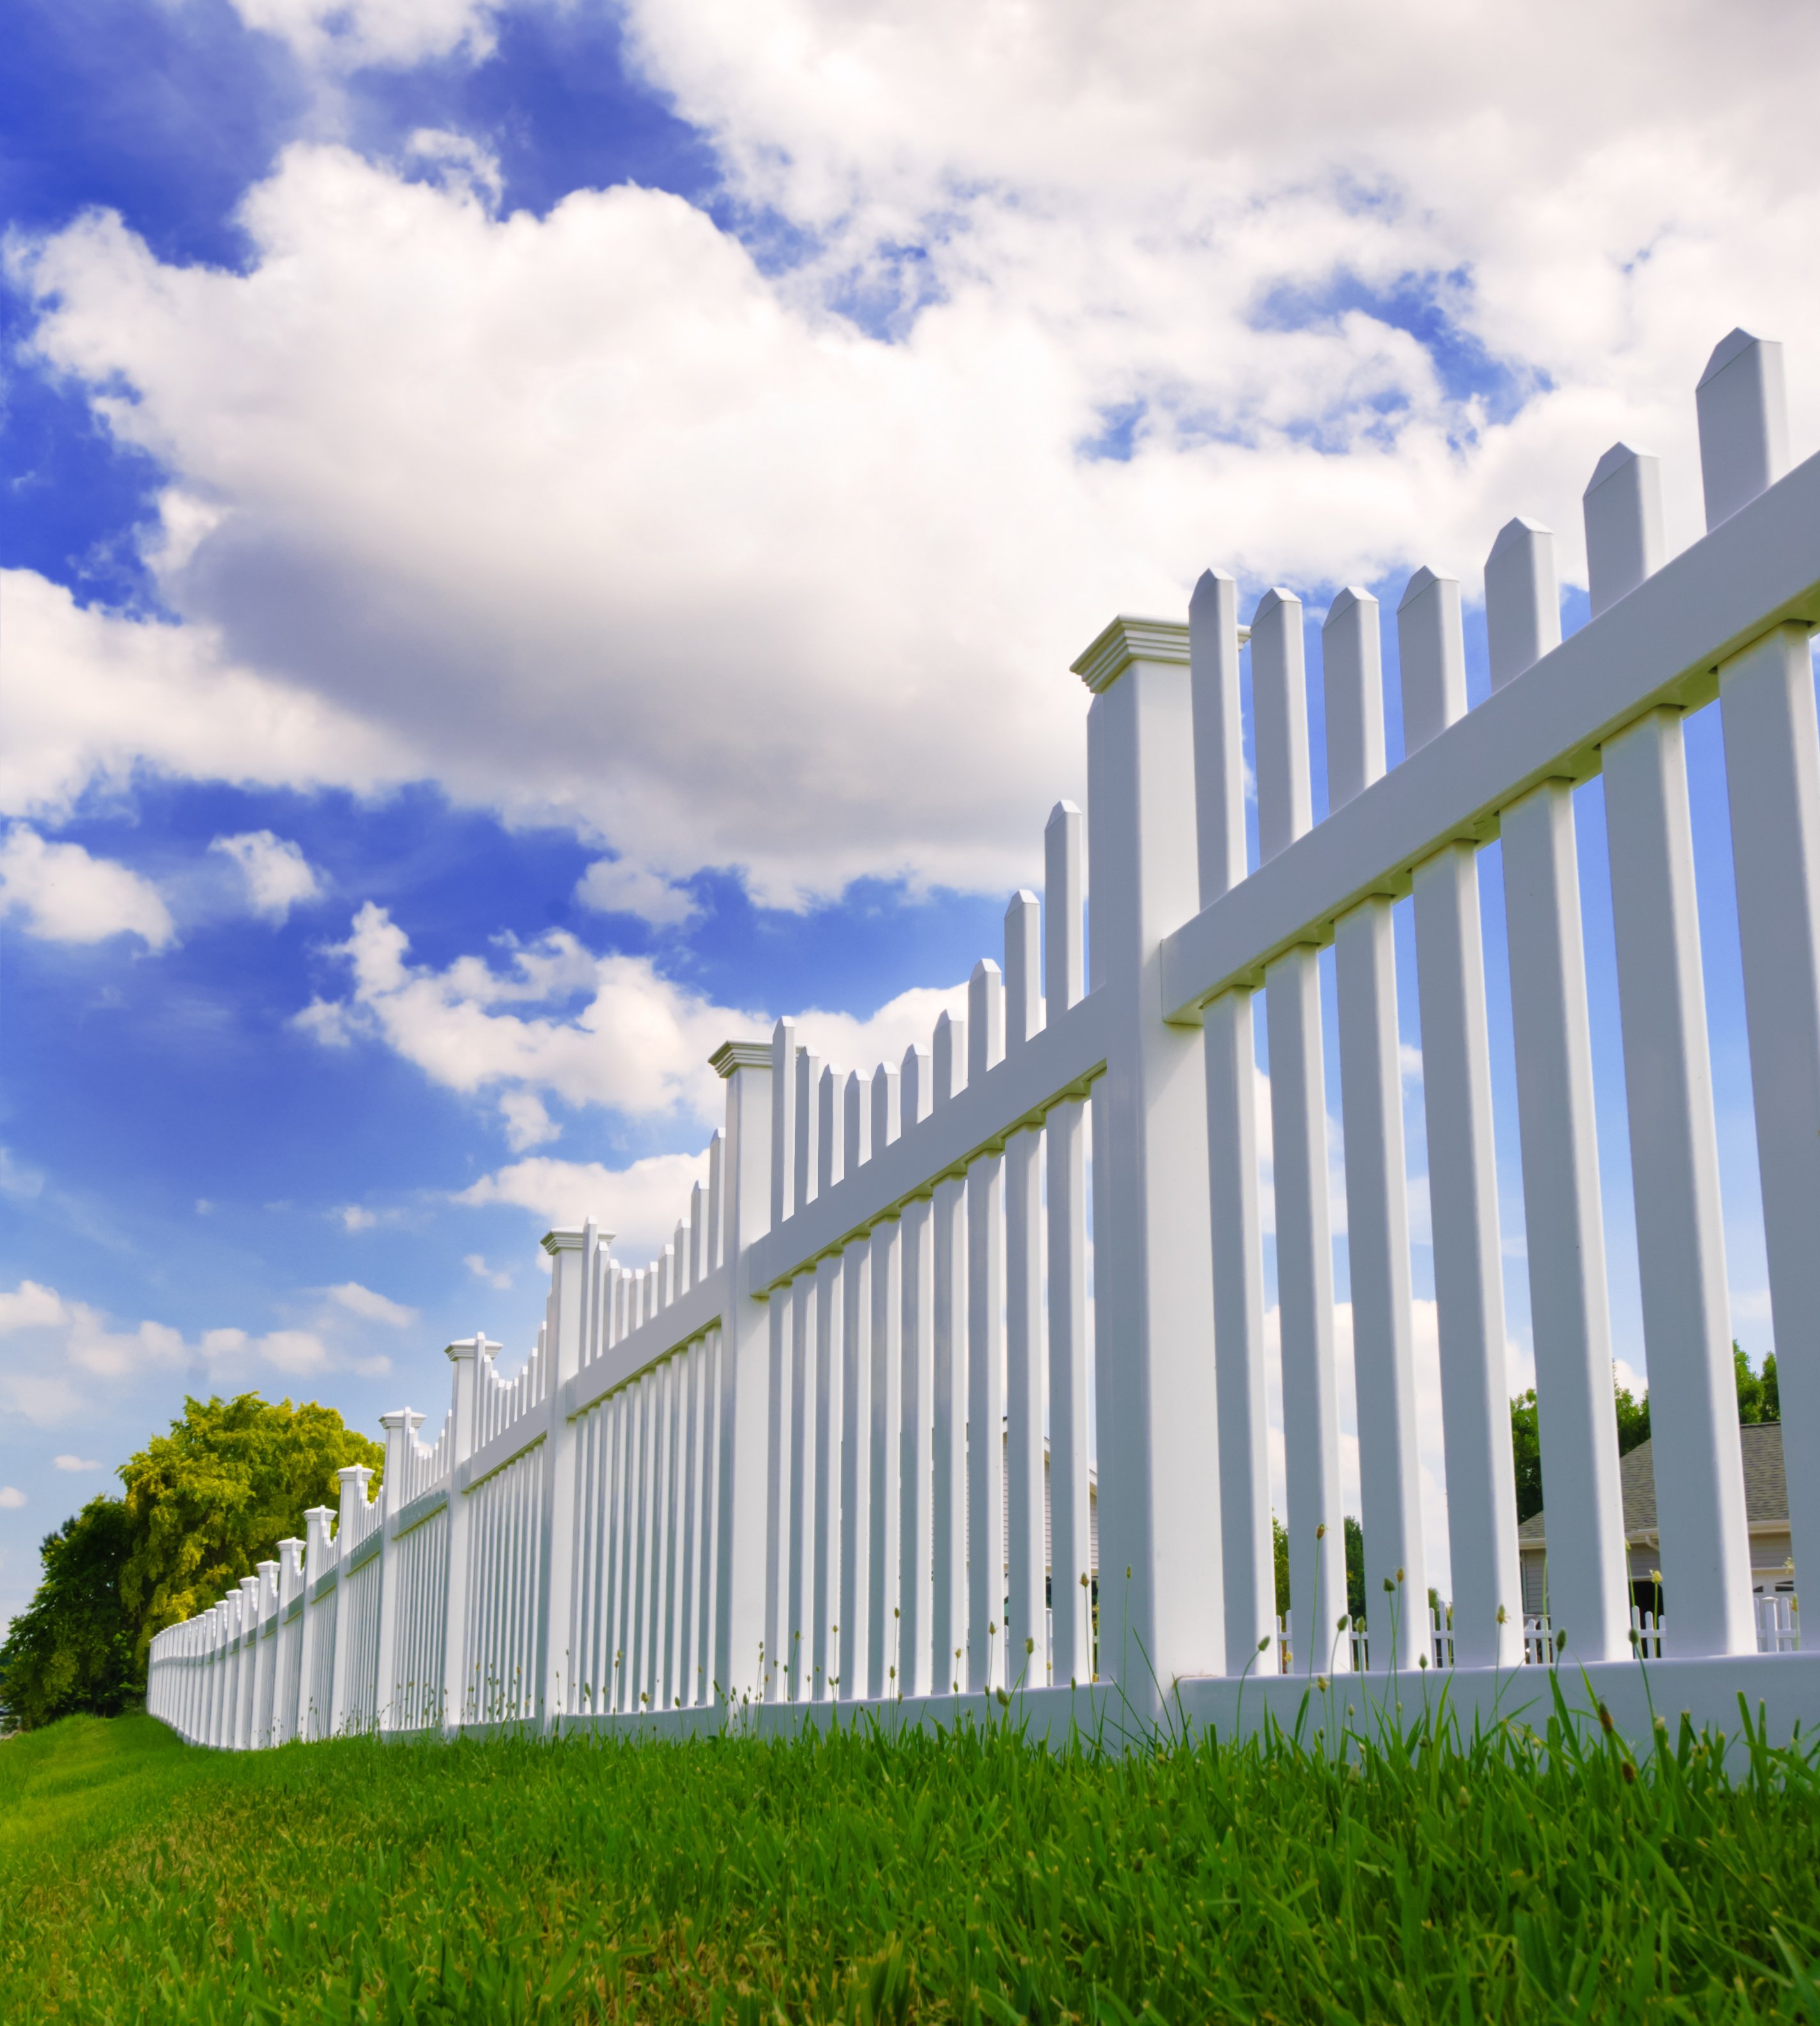 Contemporary white vinyl fence spanning across a homes backyard with grass and blue sky and clouds in the background